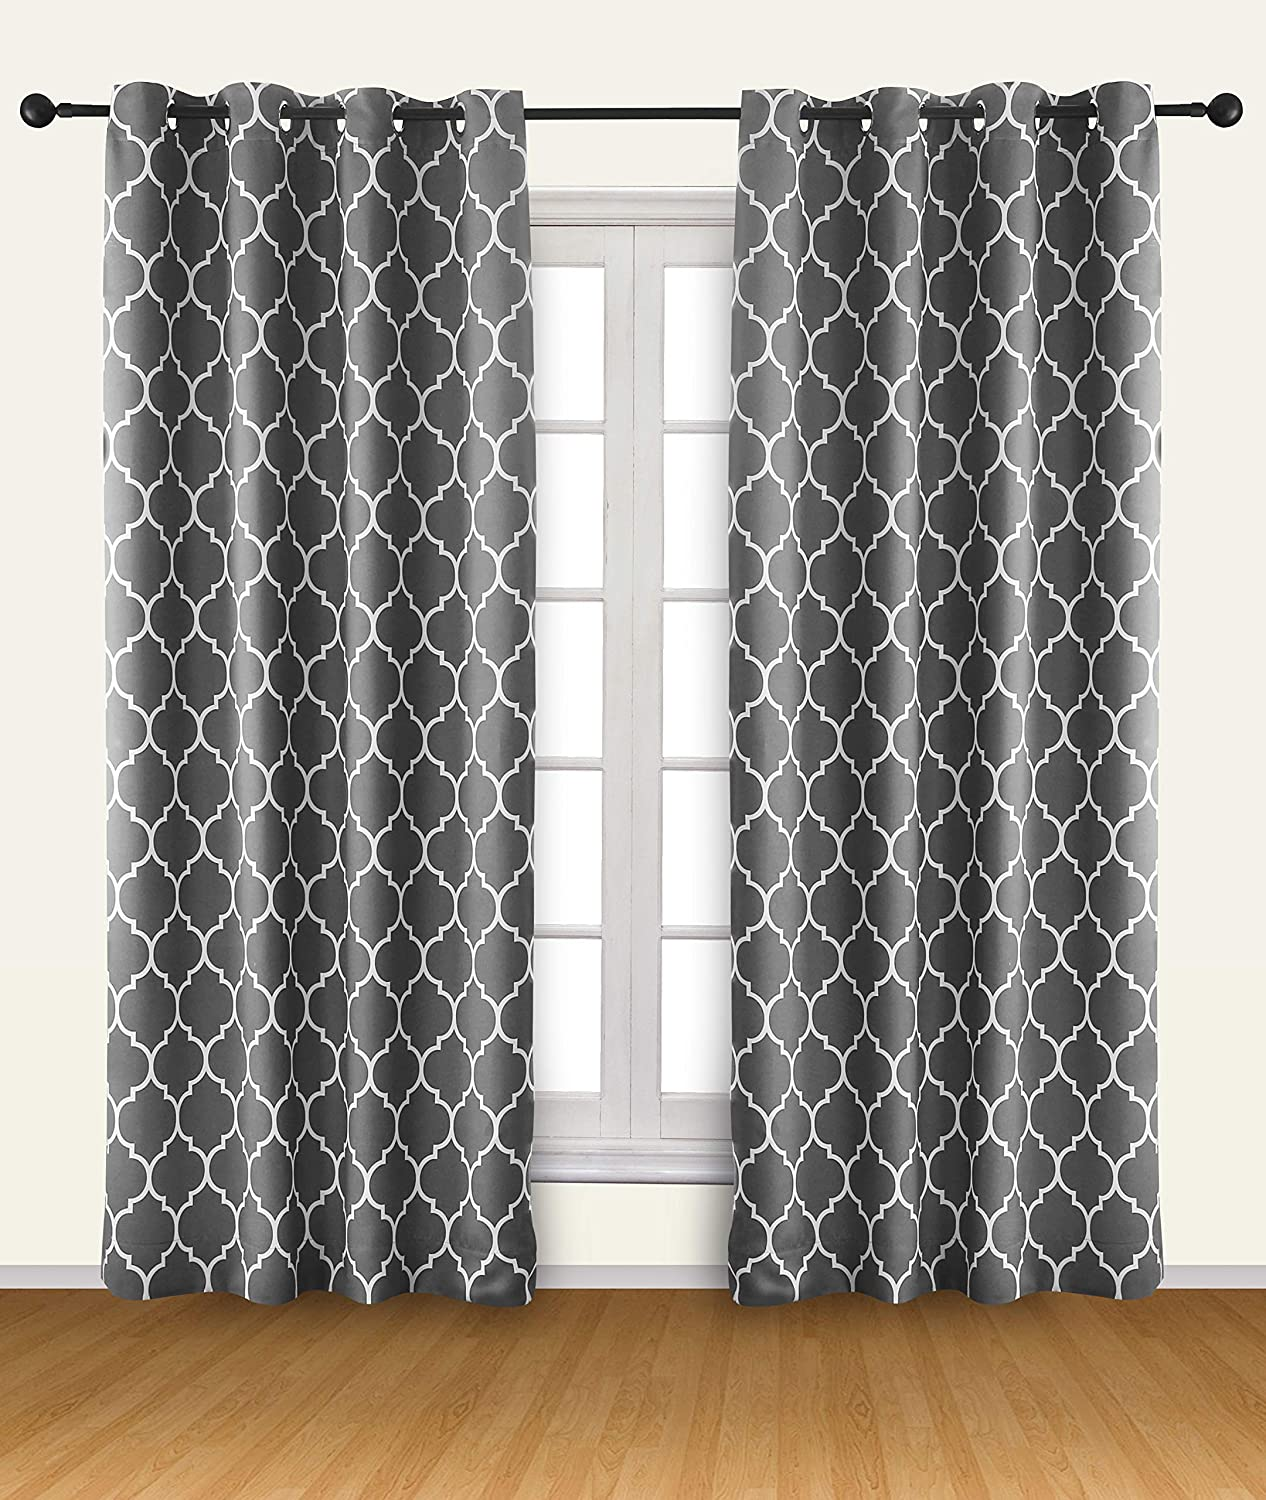 Utopia Bedding 2 Panels Grommet Printed Blackout Curtains, Thermal Insulated Curtains for Bedroom